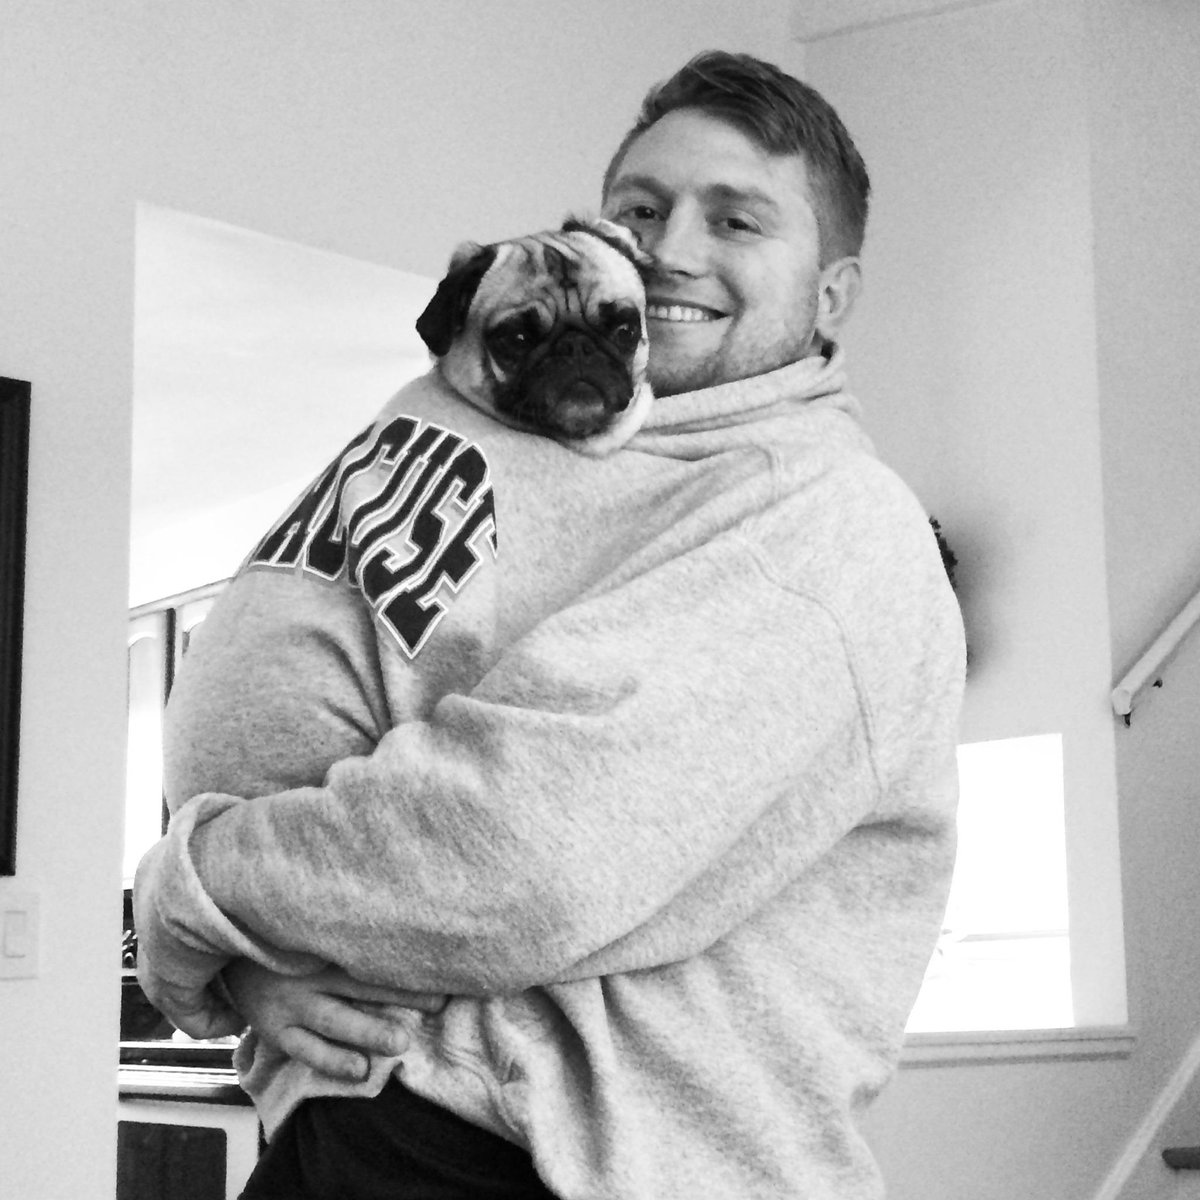 Hey #cf122 ! I'm Jake and I enjoy gardening, cooking, nature, and I am a little obsessed with my Pug Bella! #nifkin http://t.co/Zgoy6tCG6A